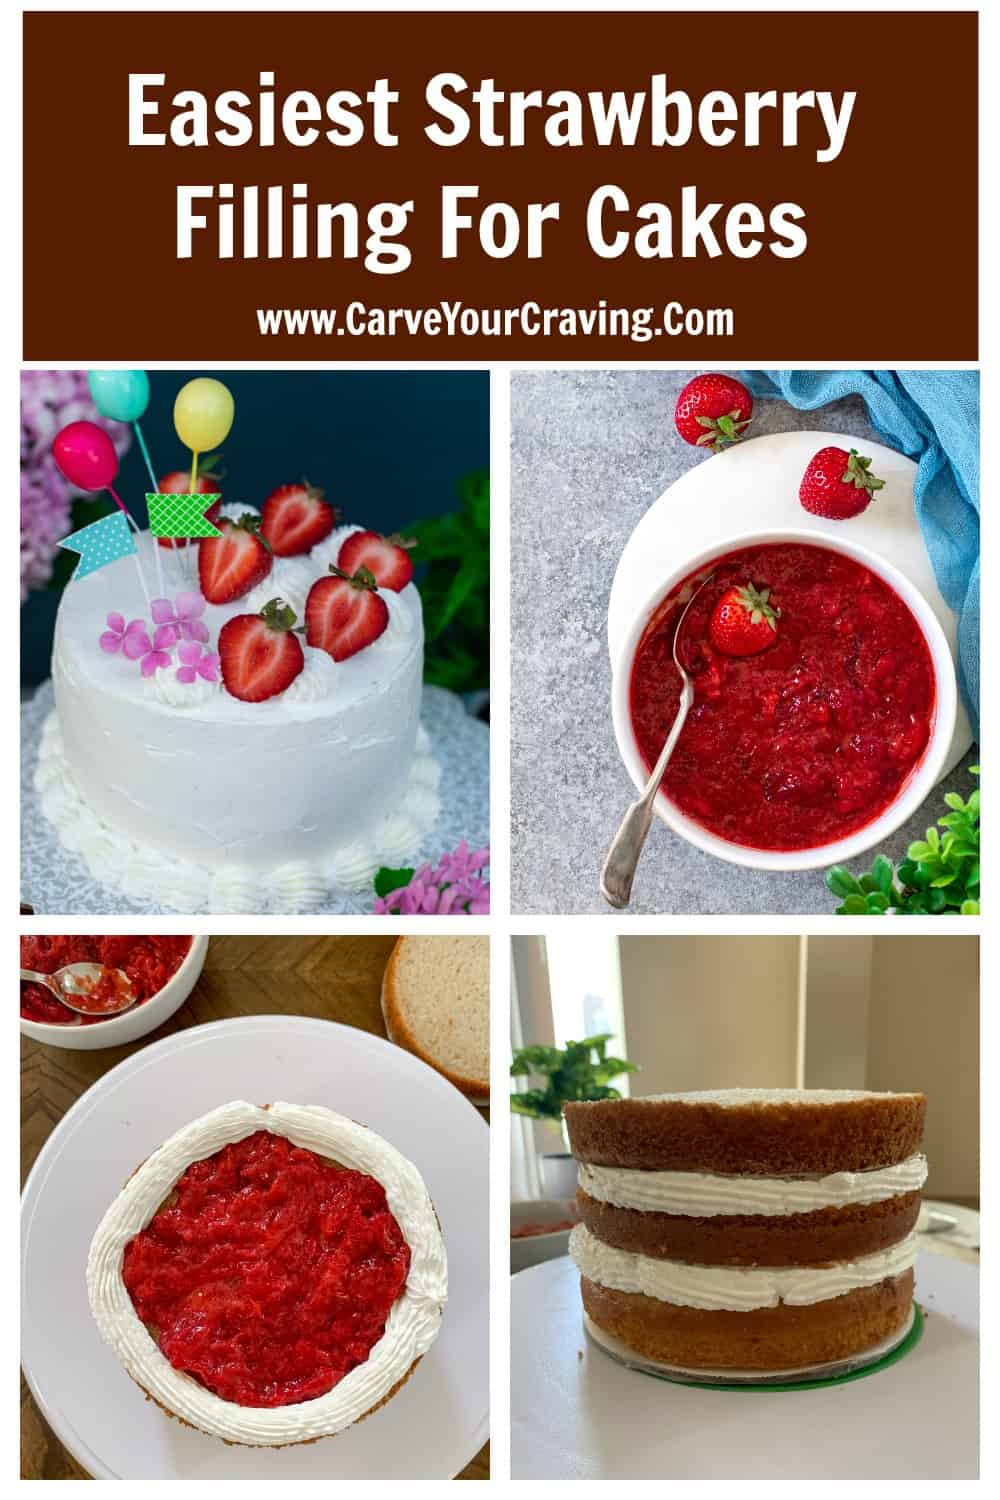 Strawberry filling scooped on a cake and layered with frosting